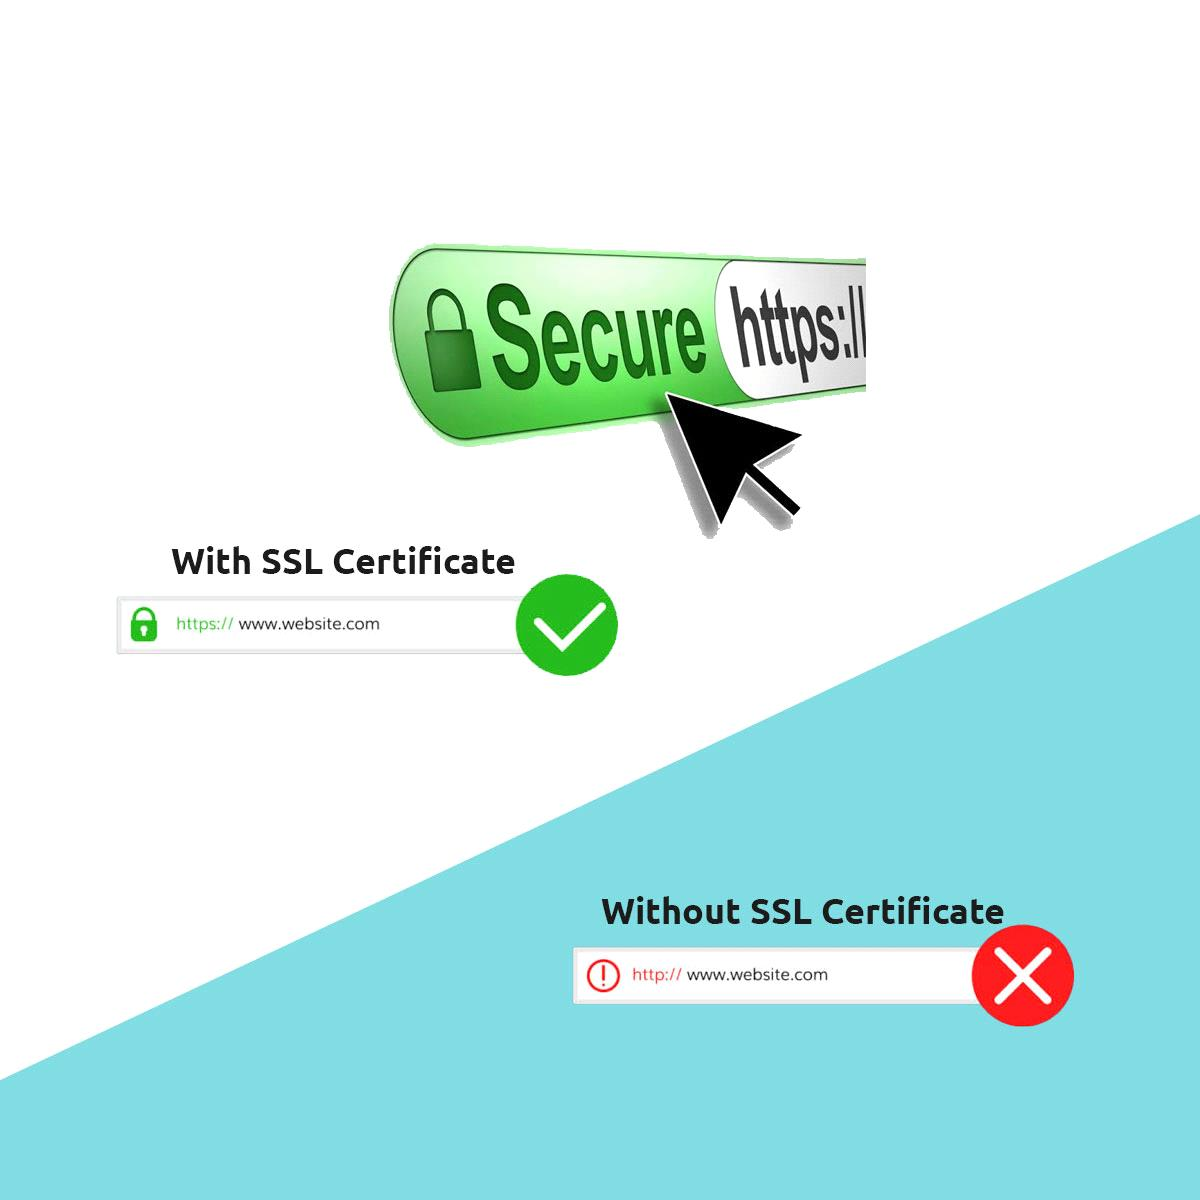 SSL Certificate - What and Why?